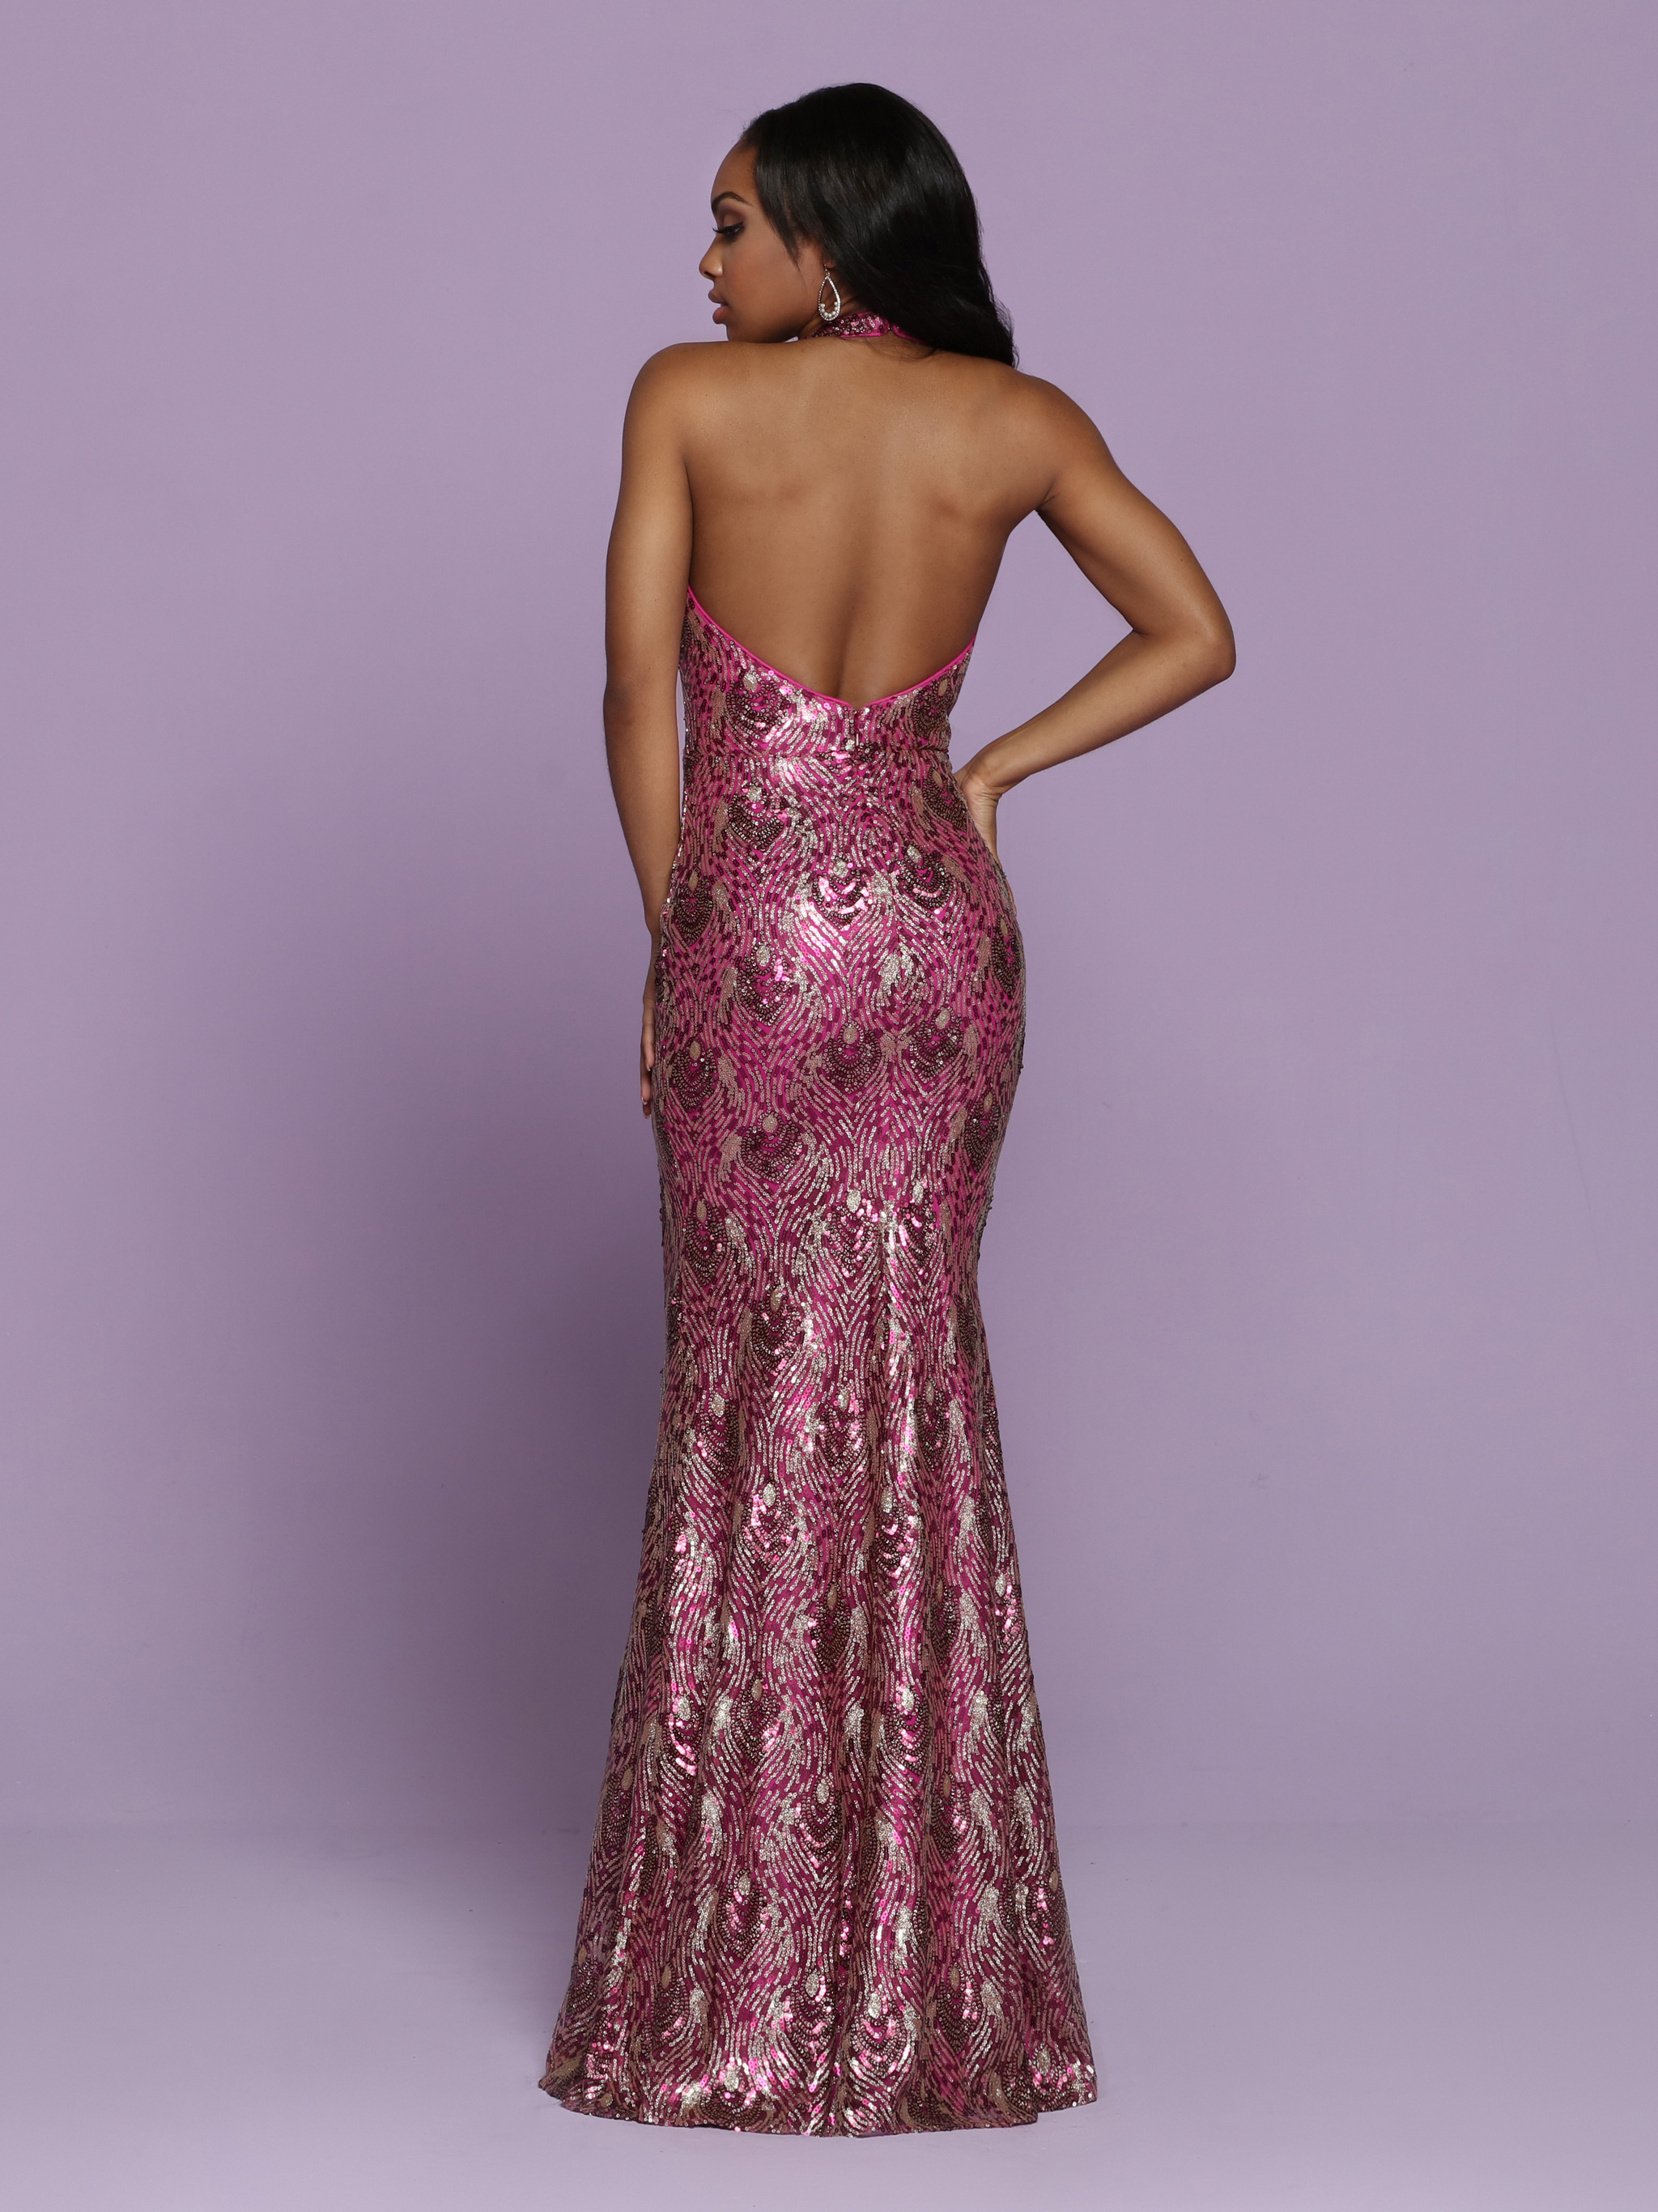 Image showing back view of style #72066